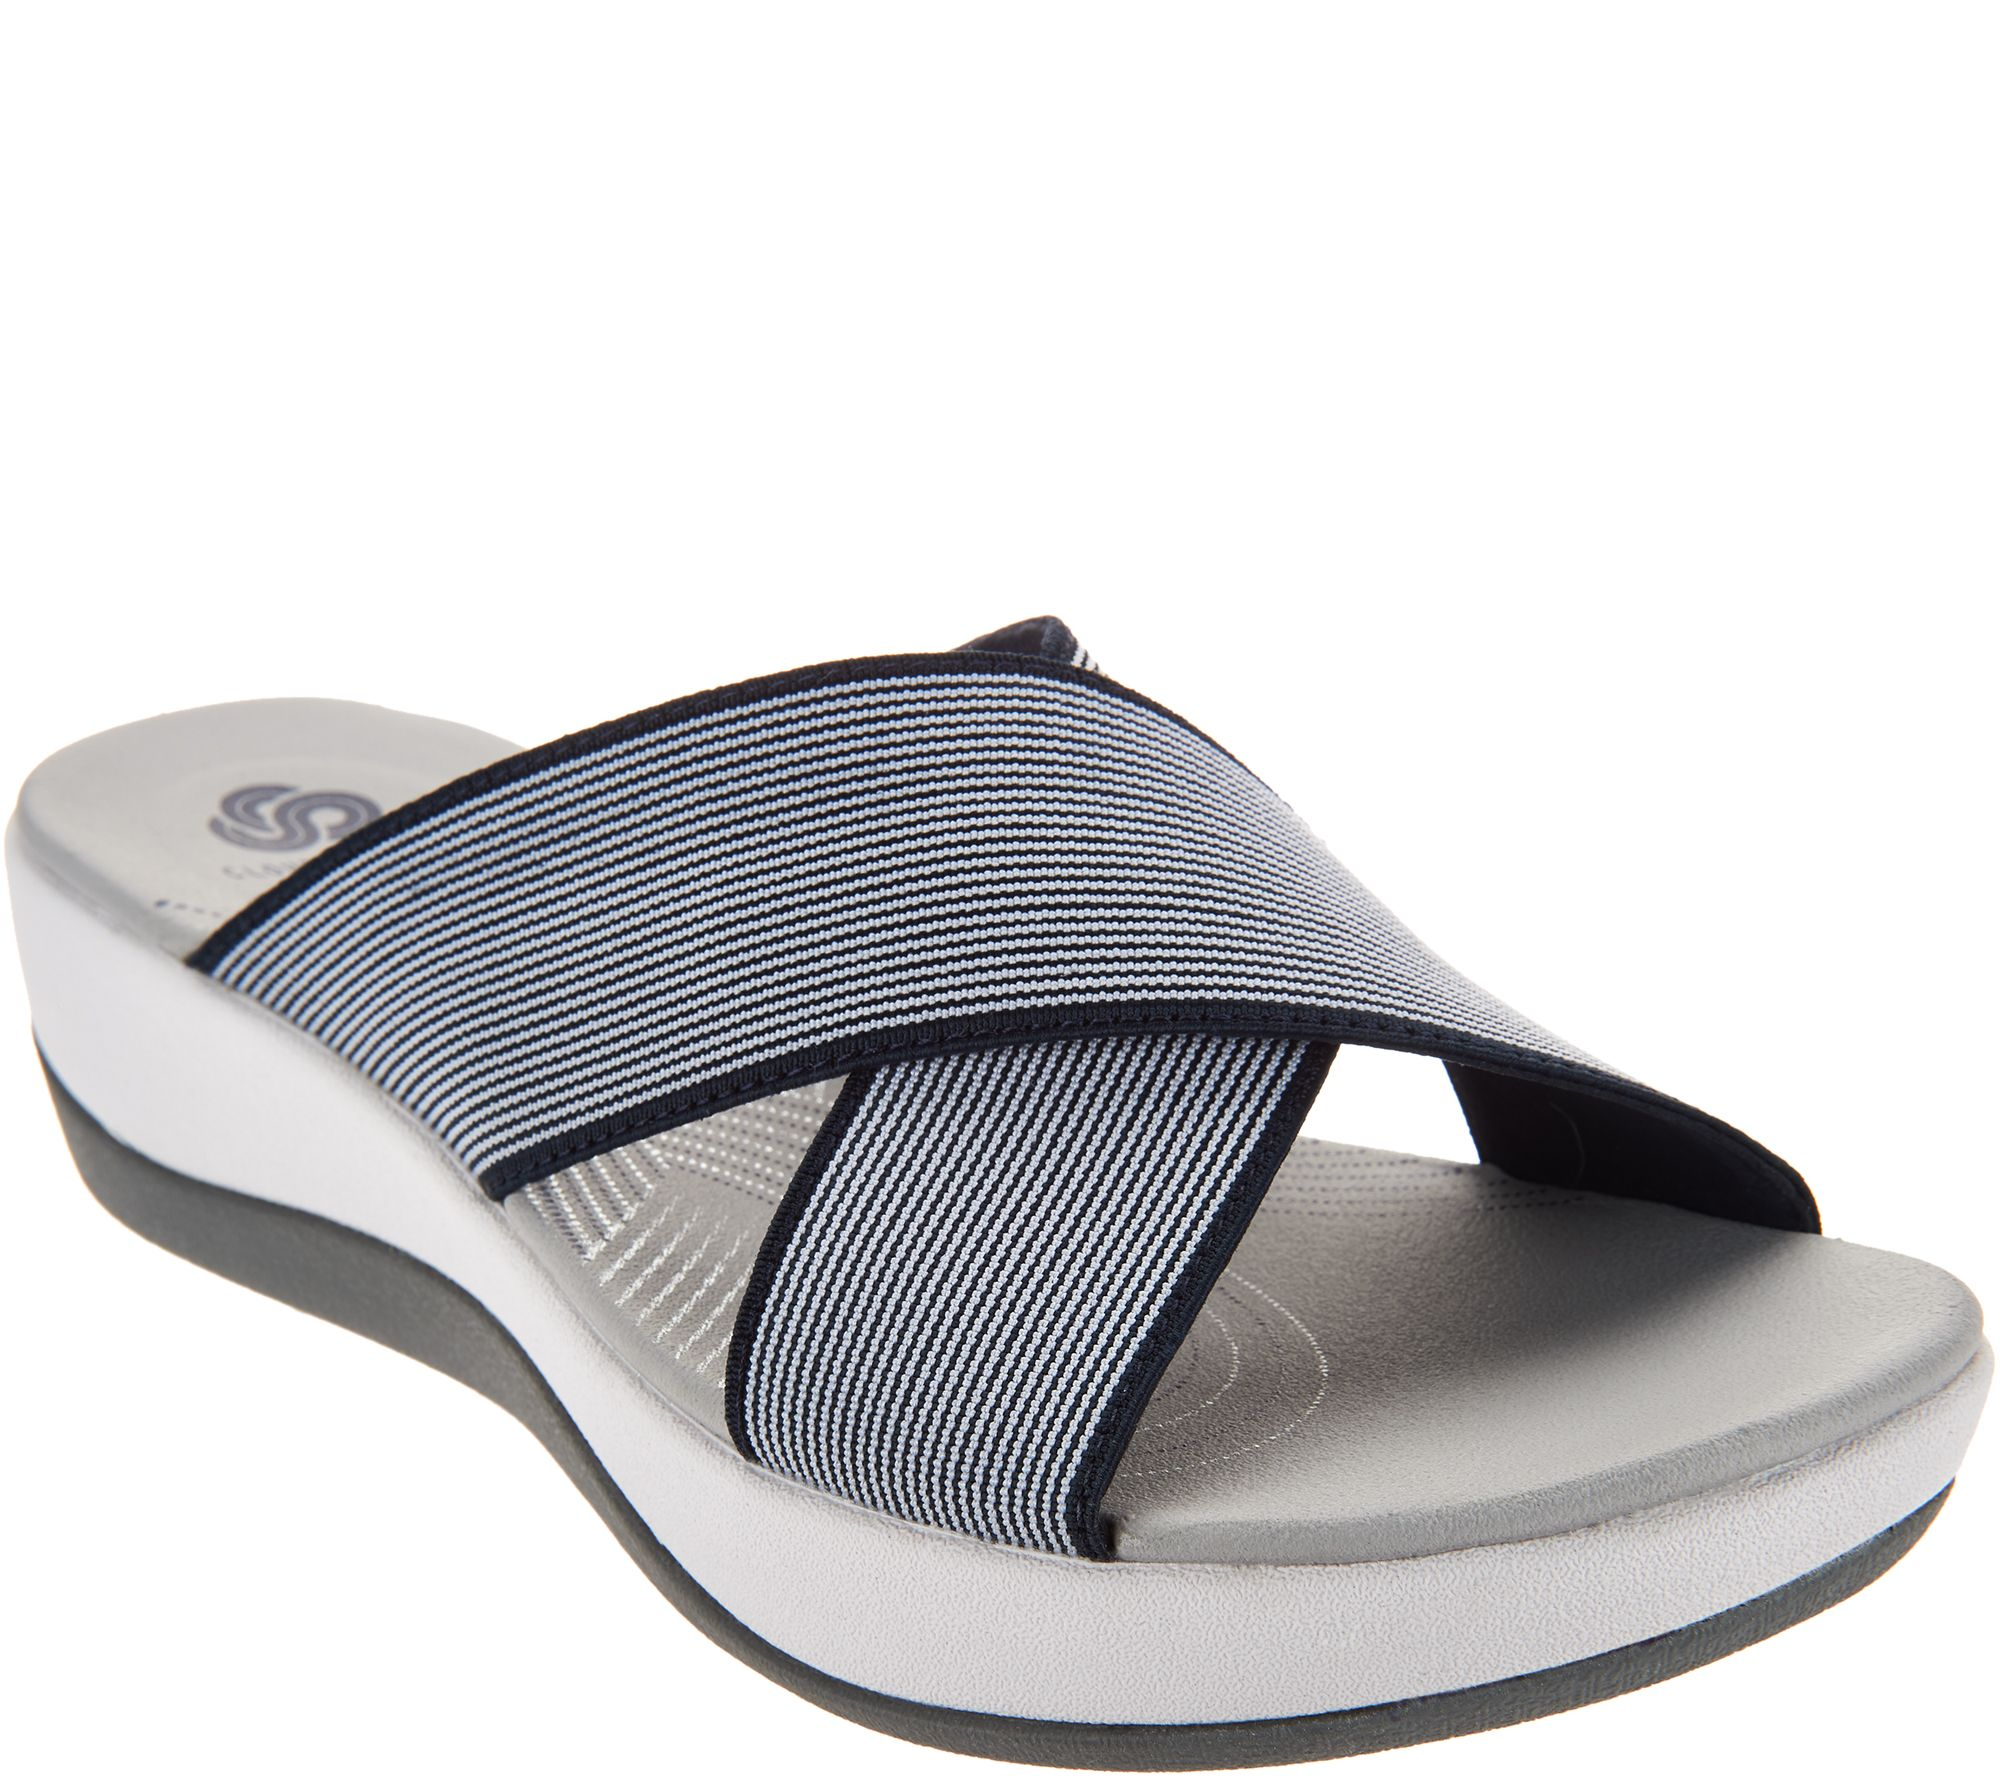 cf68adcaaa56 CLOUDSTEPPERS by Clarks Cross Band Slide Sandals - Arla Elin - Page 1 —  QVC.com